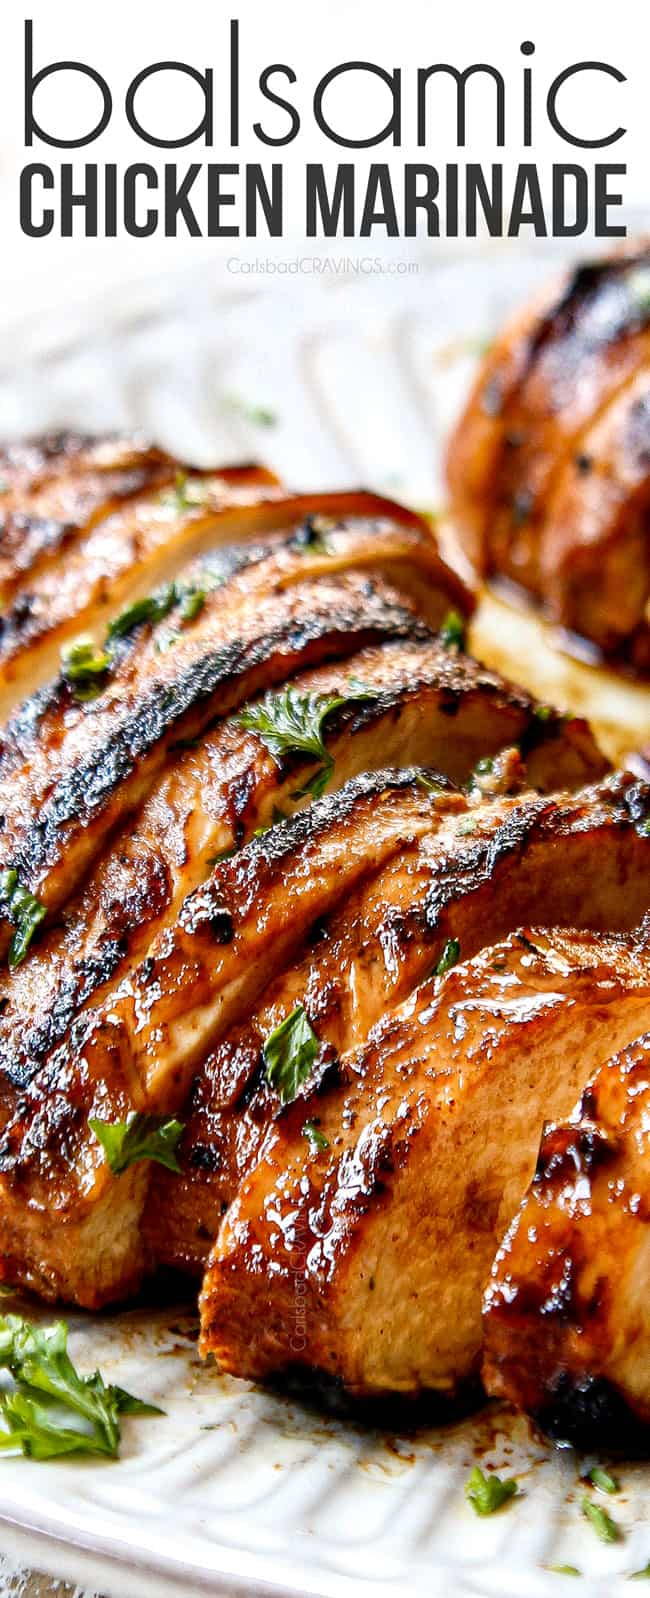 up close of marinated balsamic chicken thinly sliced on a plate showing how juicy it is